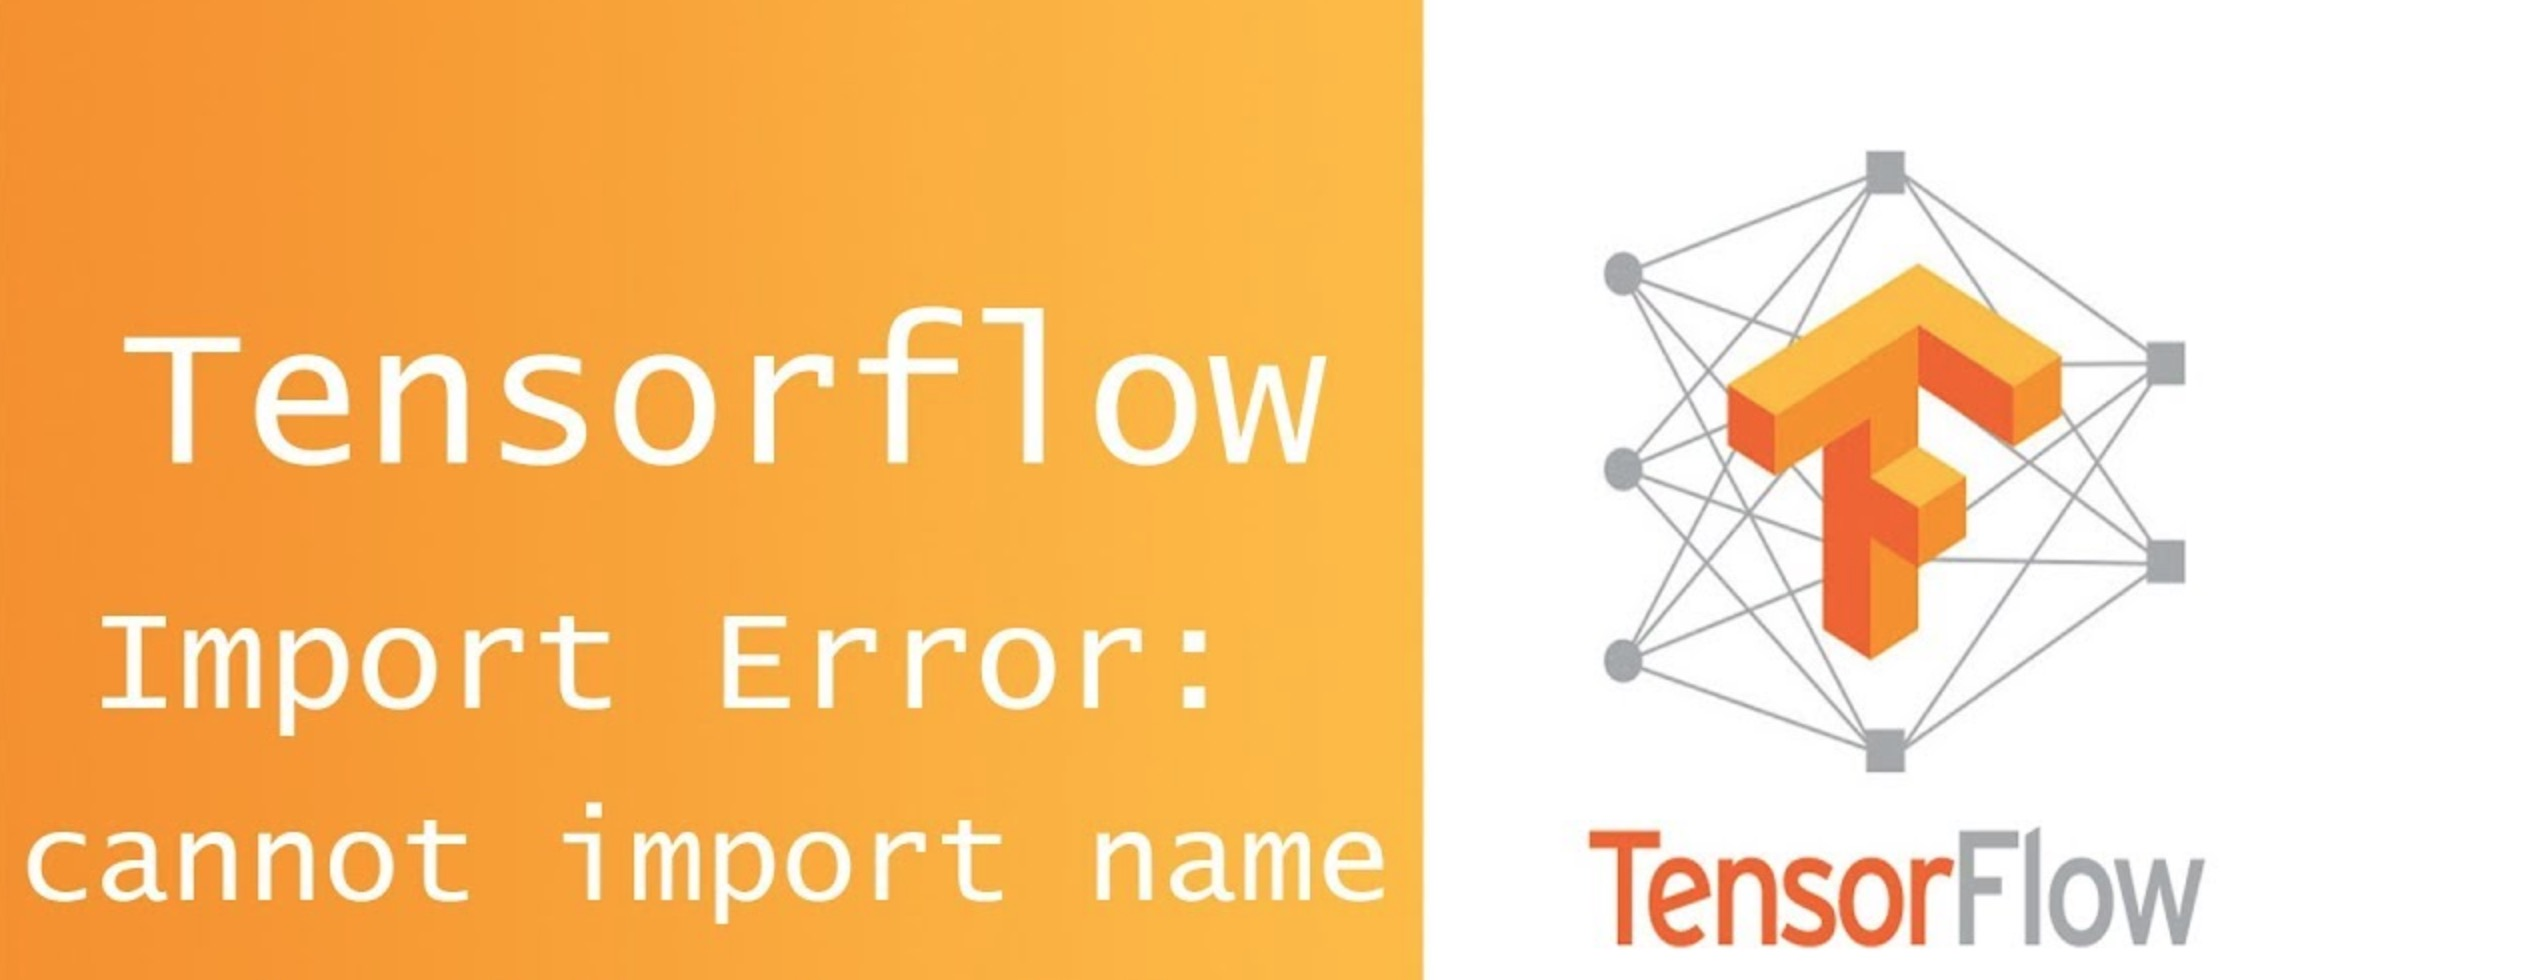 tensorflow import error